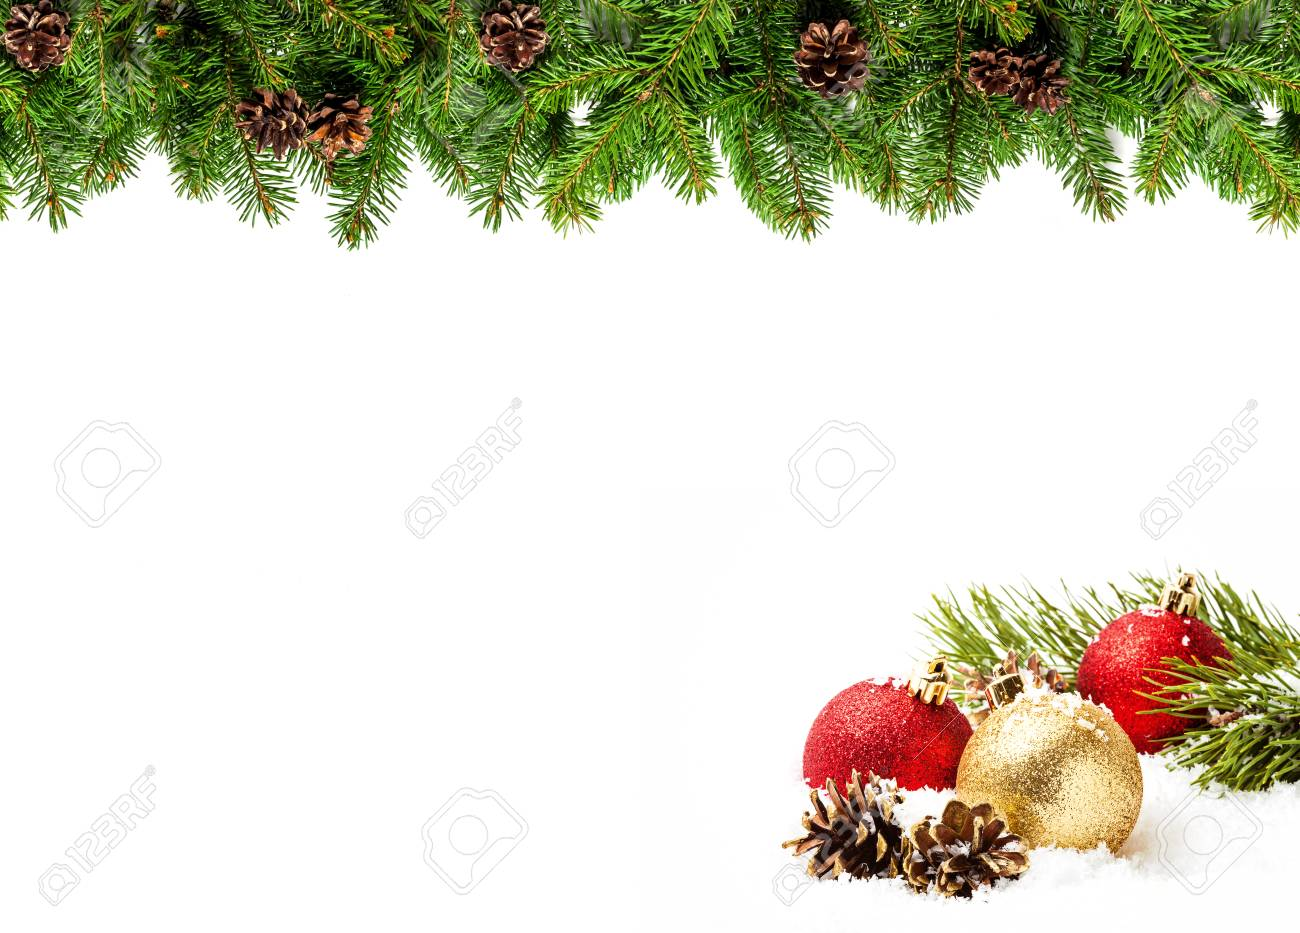 Christmas Card Border.Christmas Tree Branches On White Background As A Border Or Template